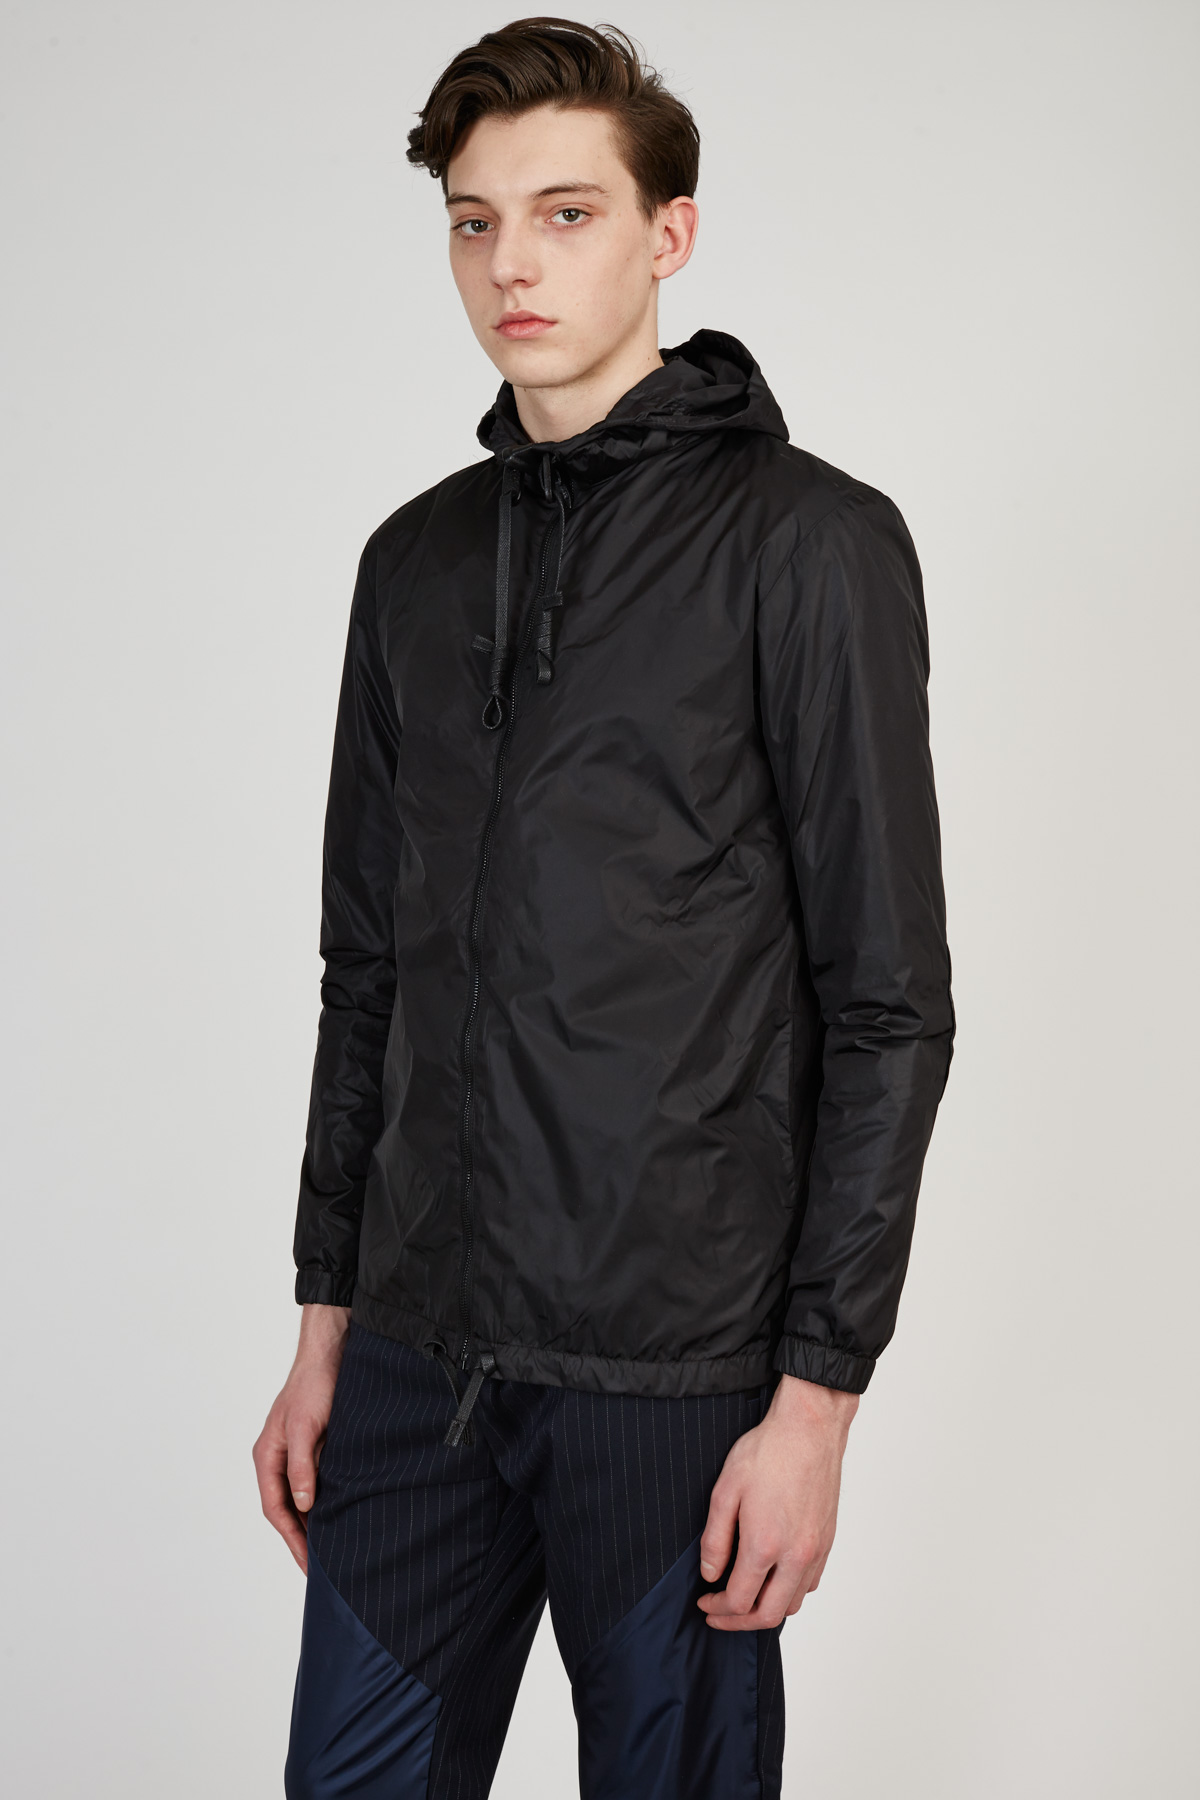 Prospekt supply matte nylon leather accents windbreaker for Hem satteldorf prospekt